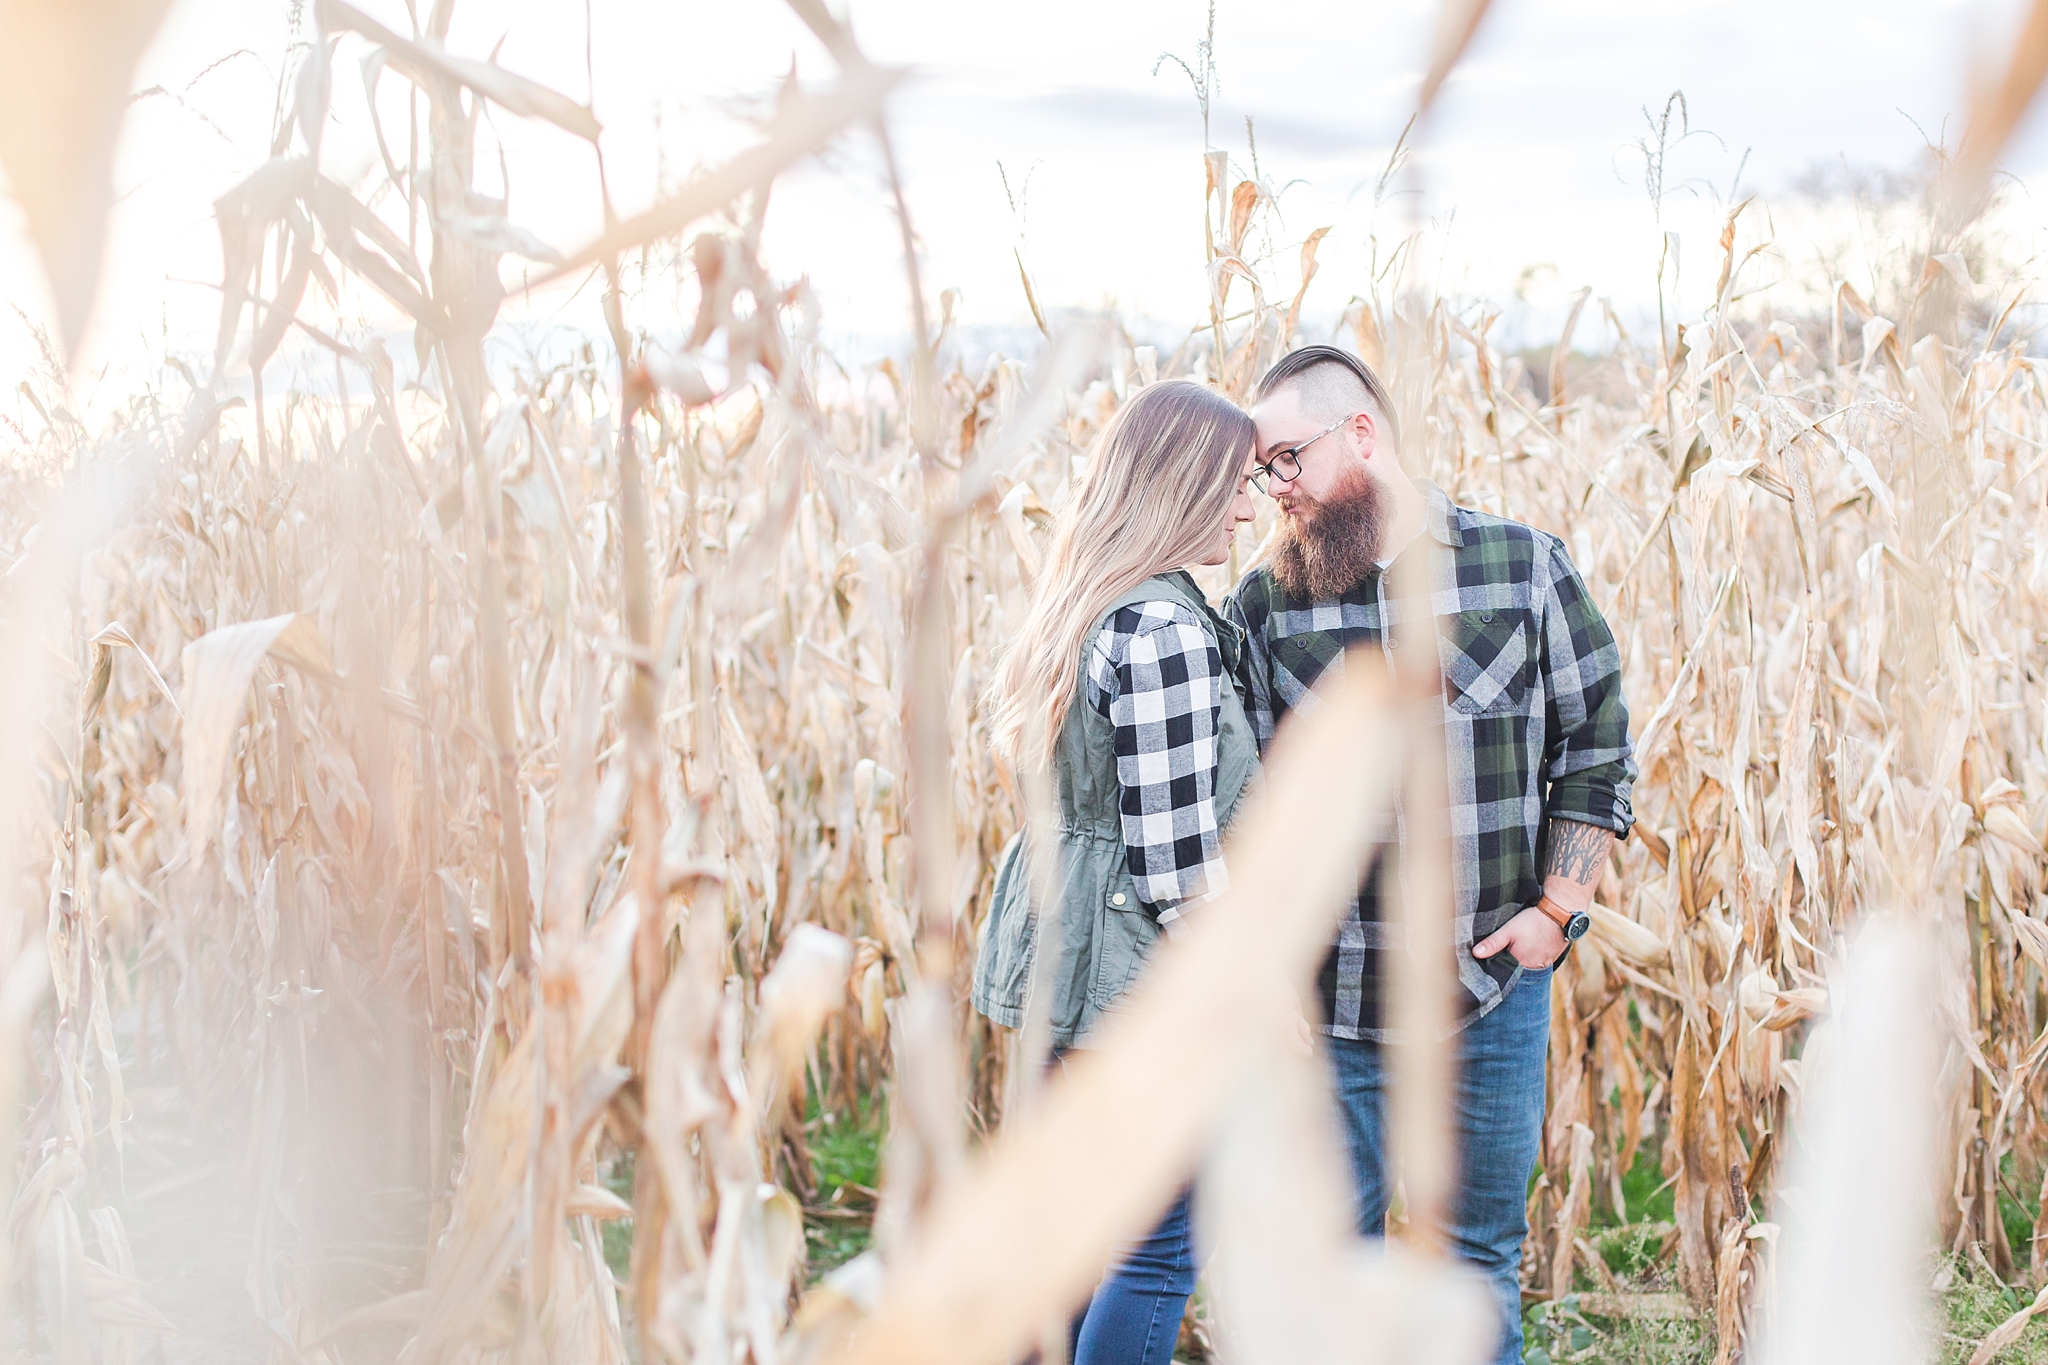 cozy-fall-engagement-photos-at-an-old-family-farm-in-monroe-michigan-by-courtney-carolyn-photography_0026.jpg